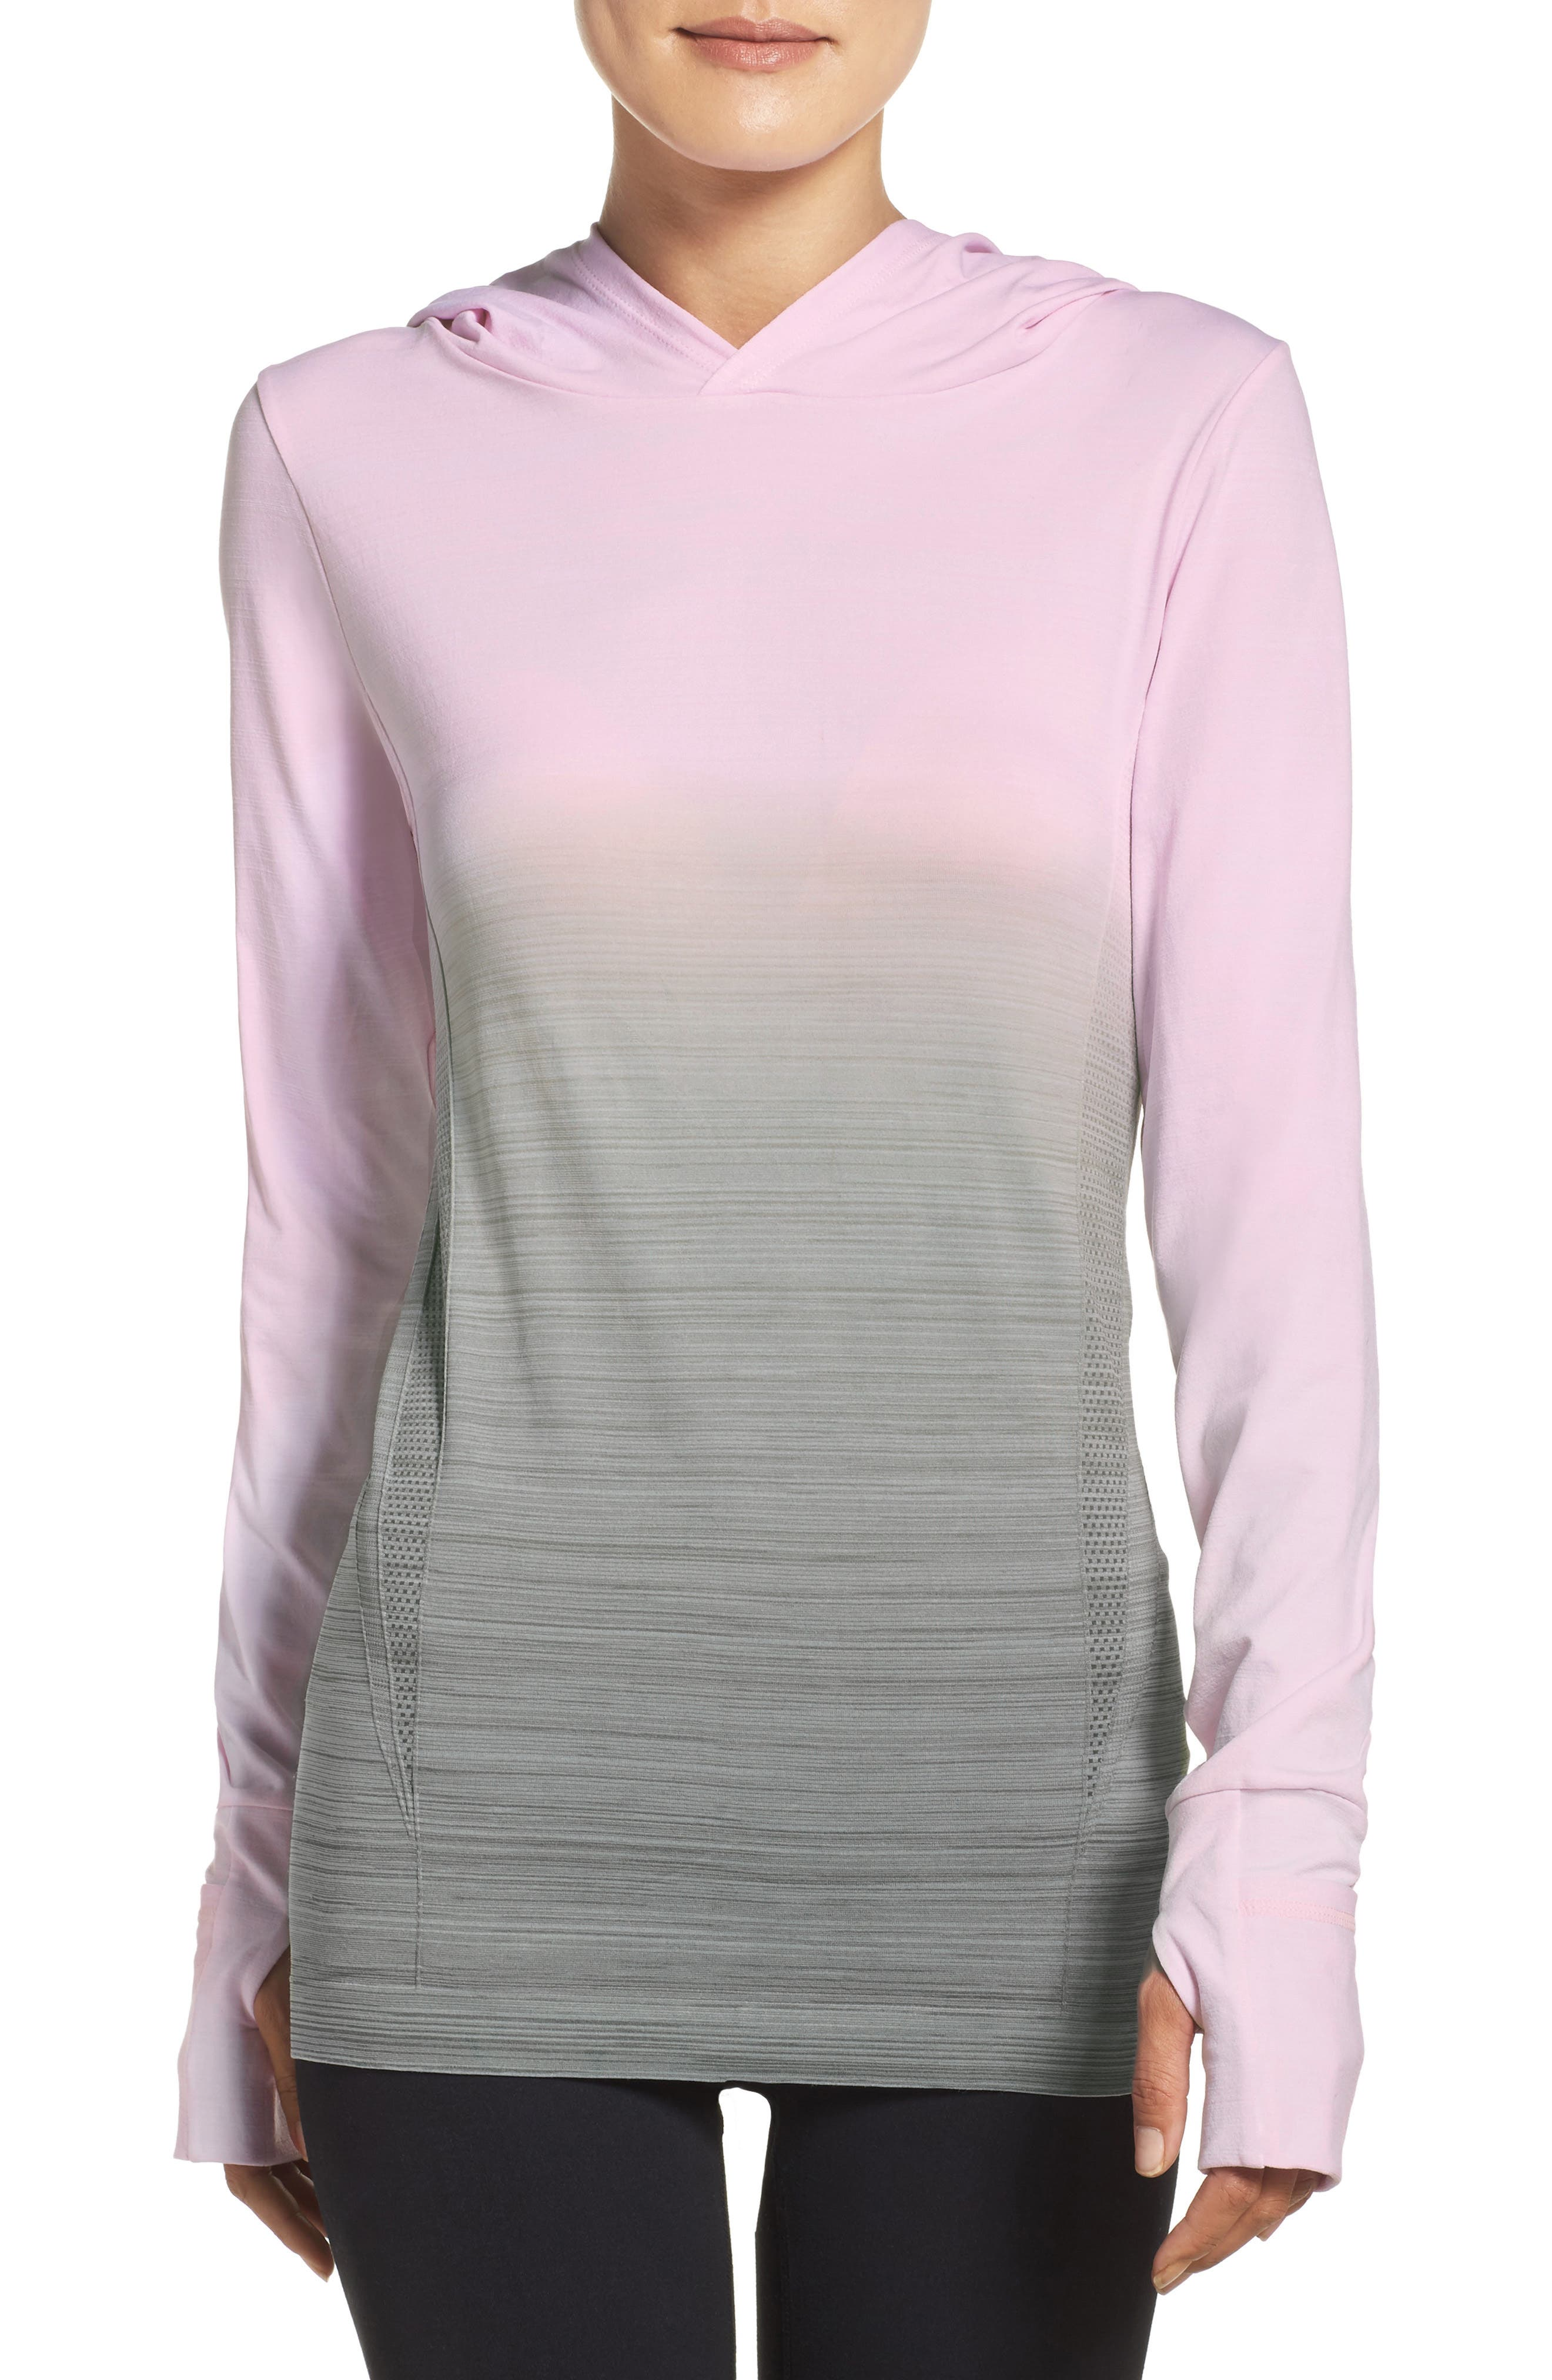 Smitten Hoodie,                             Main thumbnail 1, color,                             Cradle Pink/ Olive